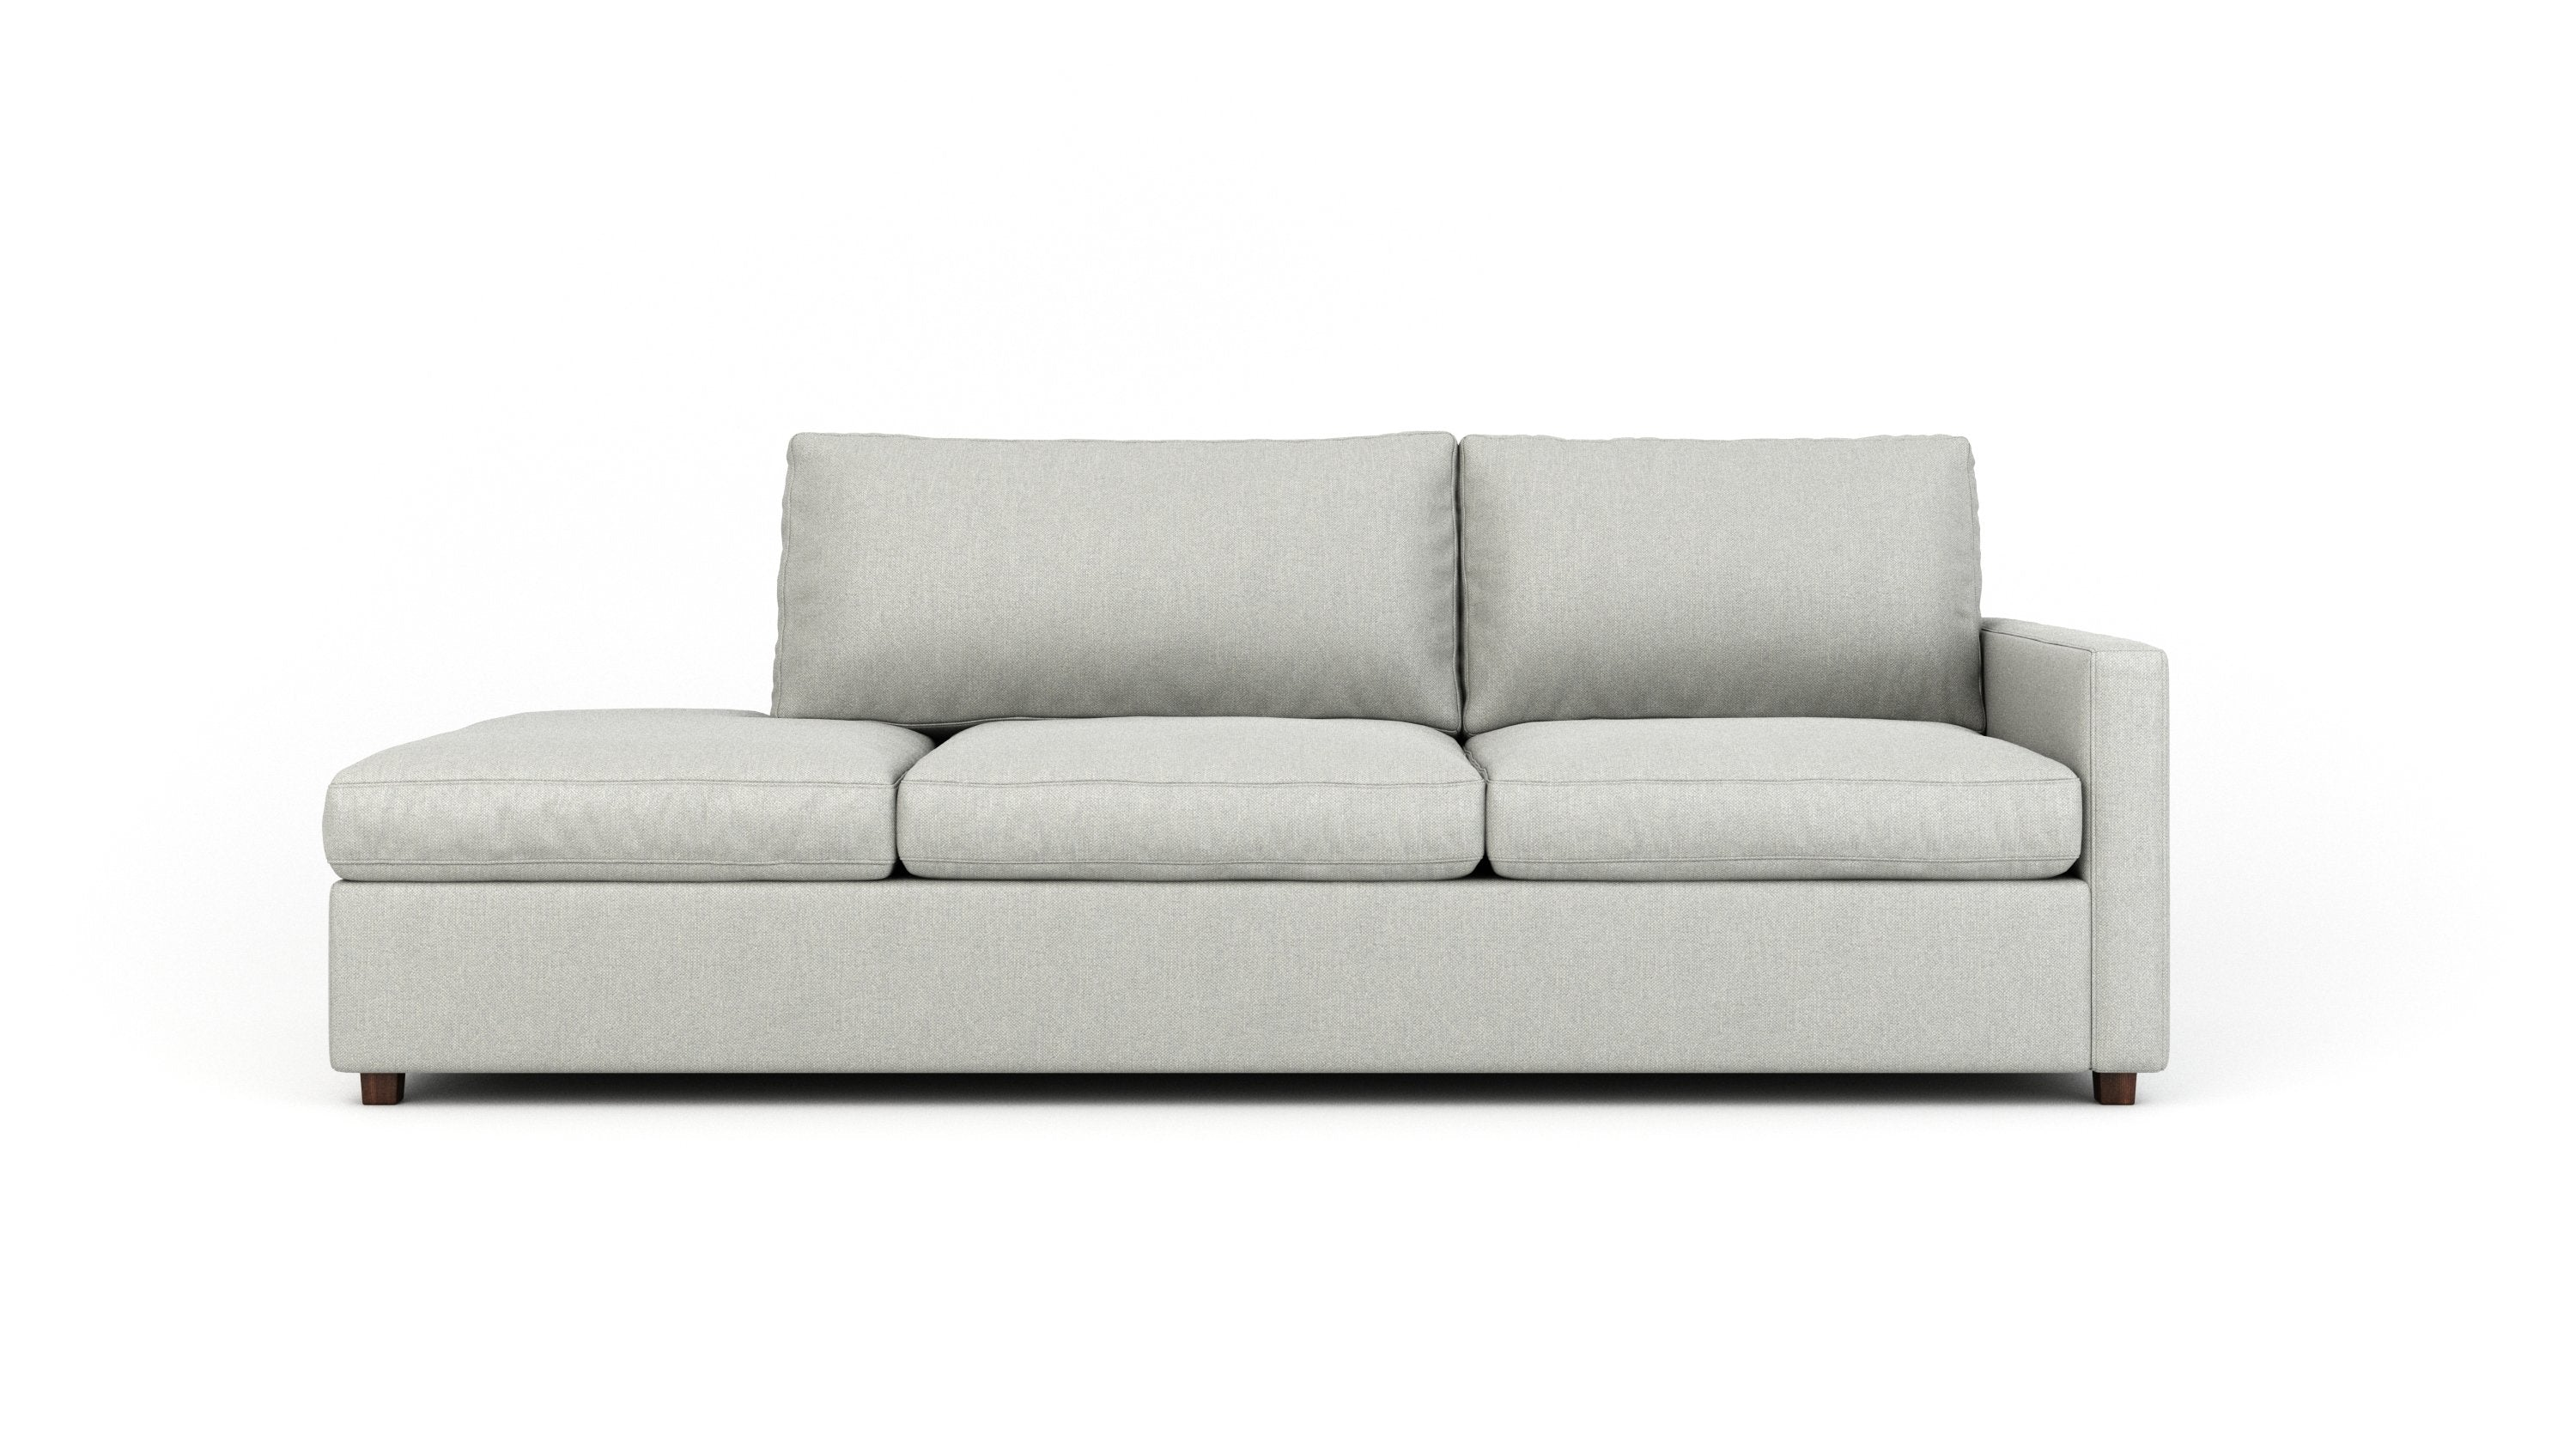 Couch Potato Lite Sofa With Bumper